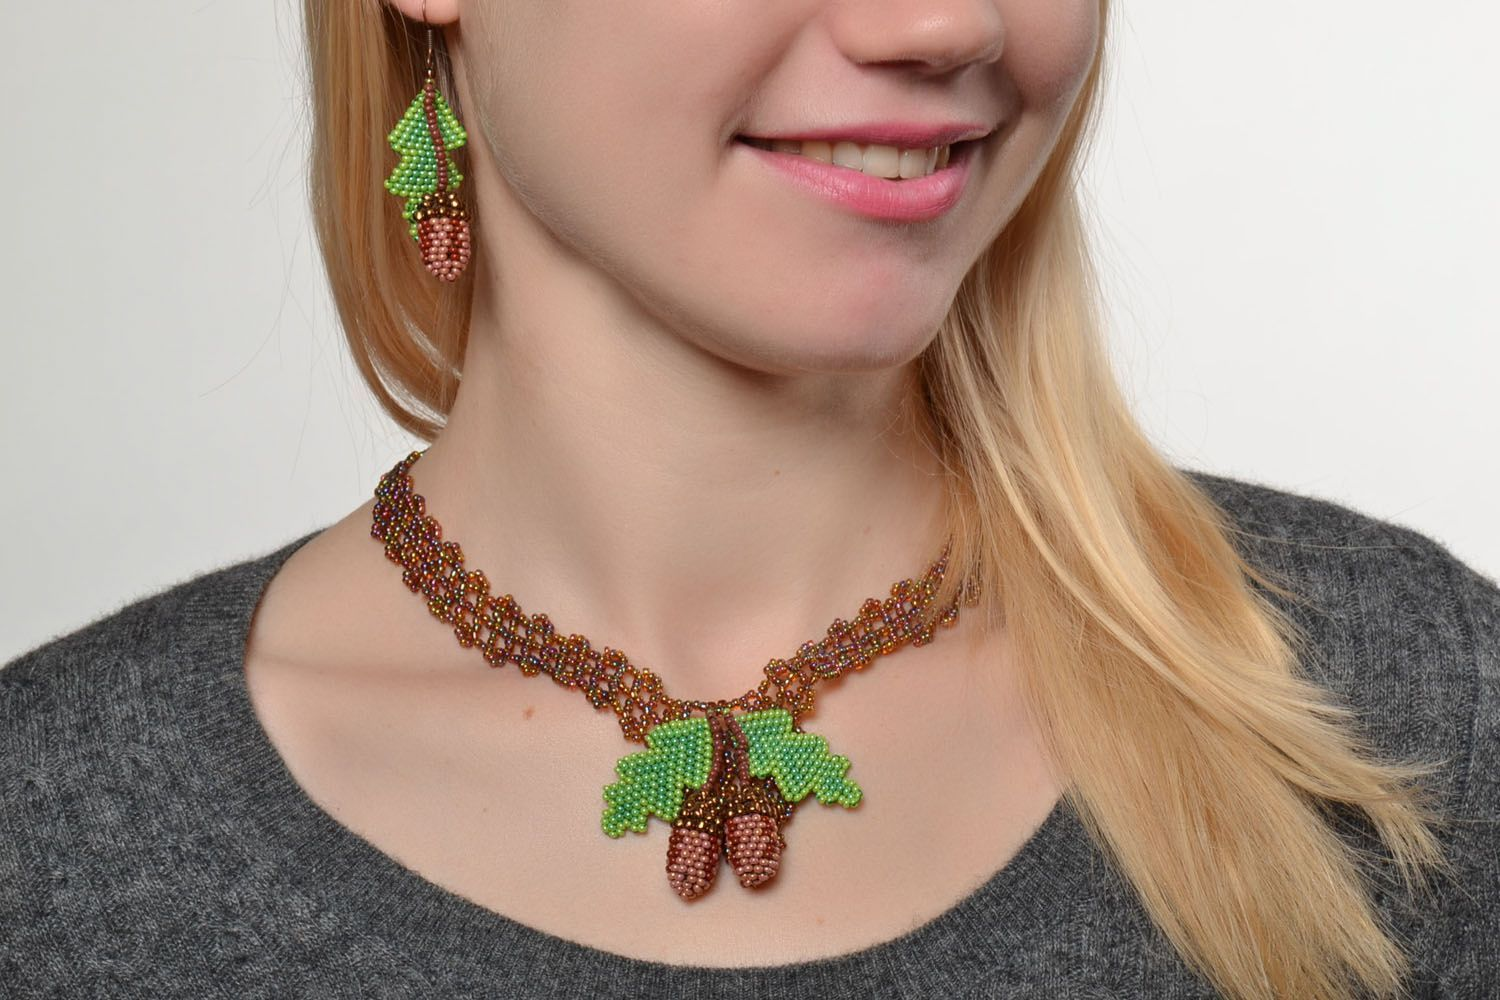 Beaded necklace and earrings photo 5